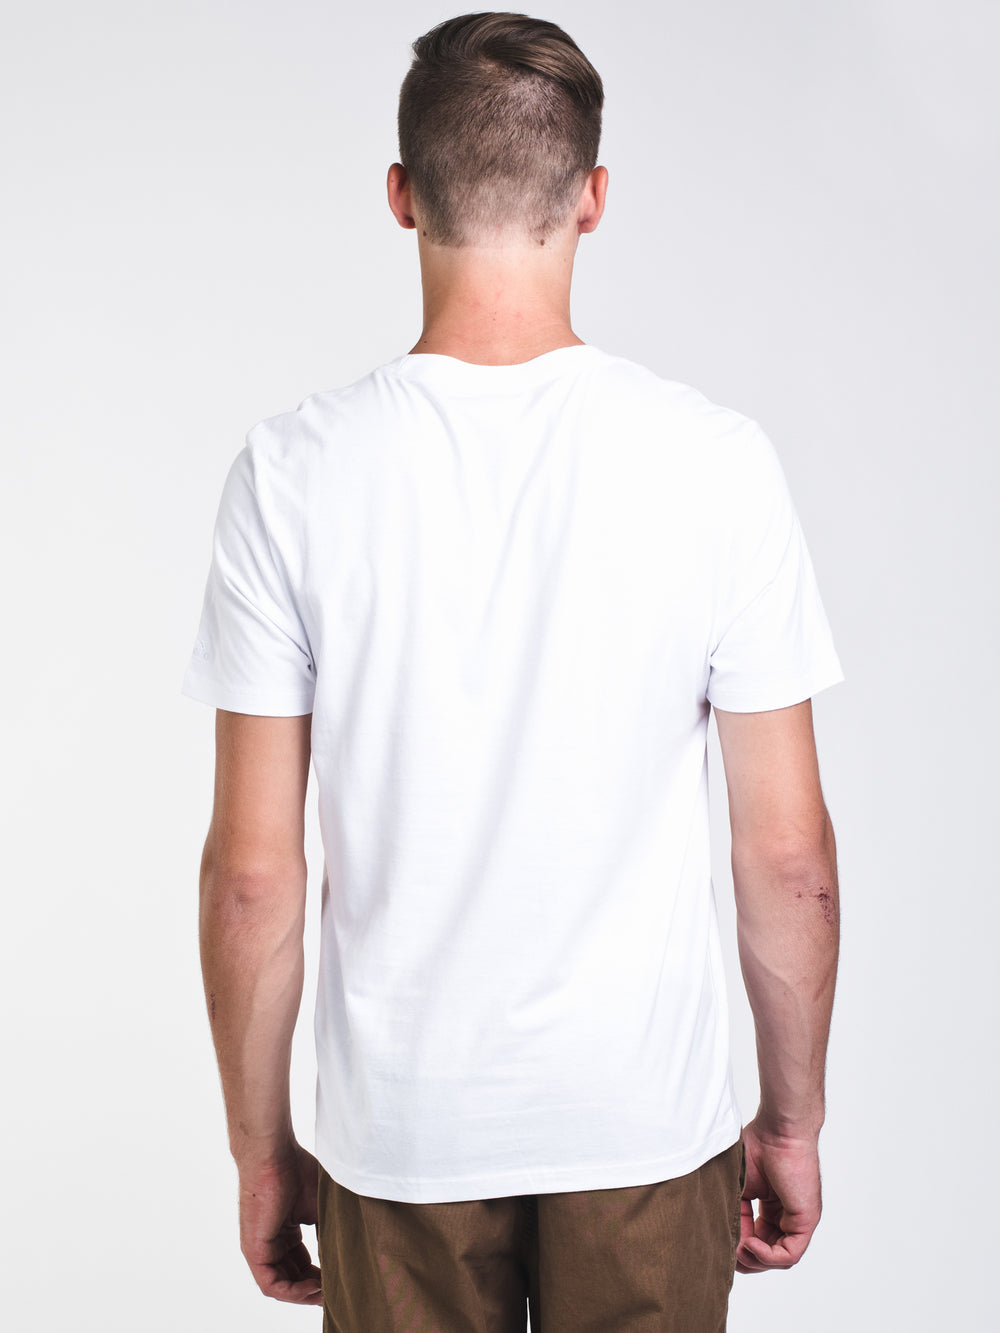 MENS BL SHORT SLEEVE T-SHIRT - WHITE/BLUE - CLEARANCE